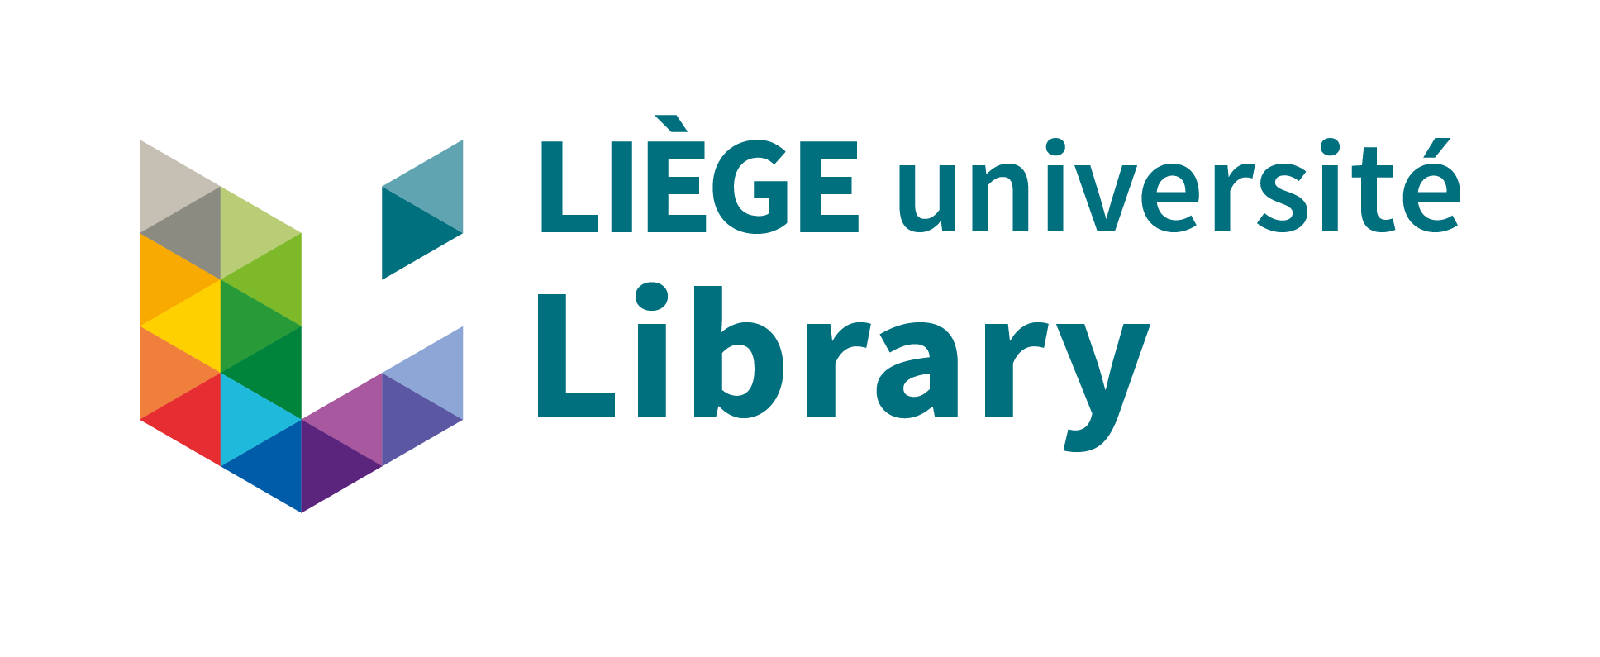 ULiege Library